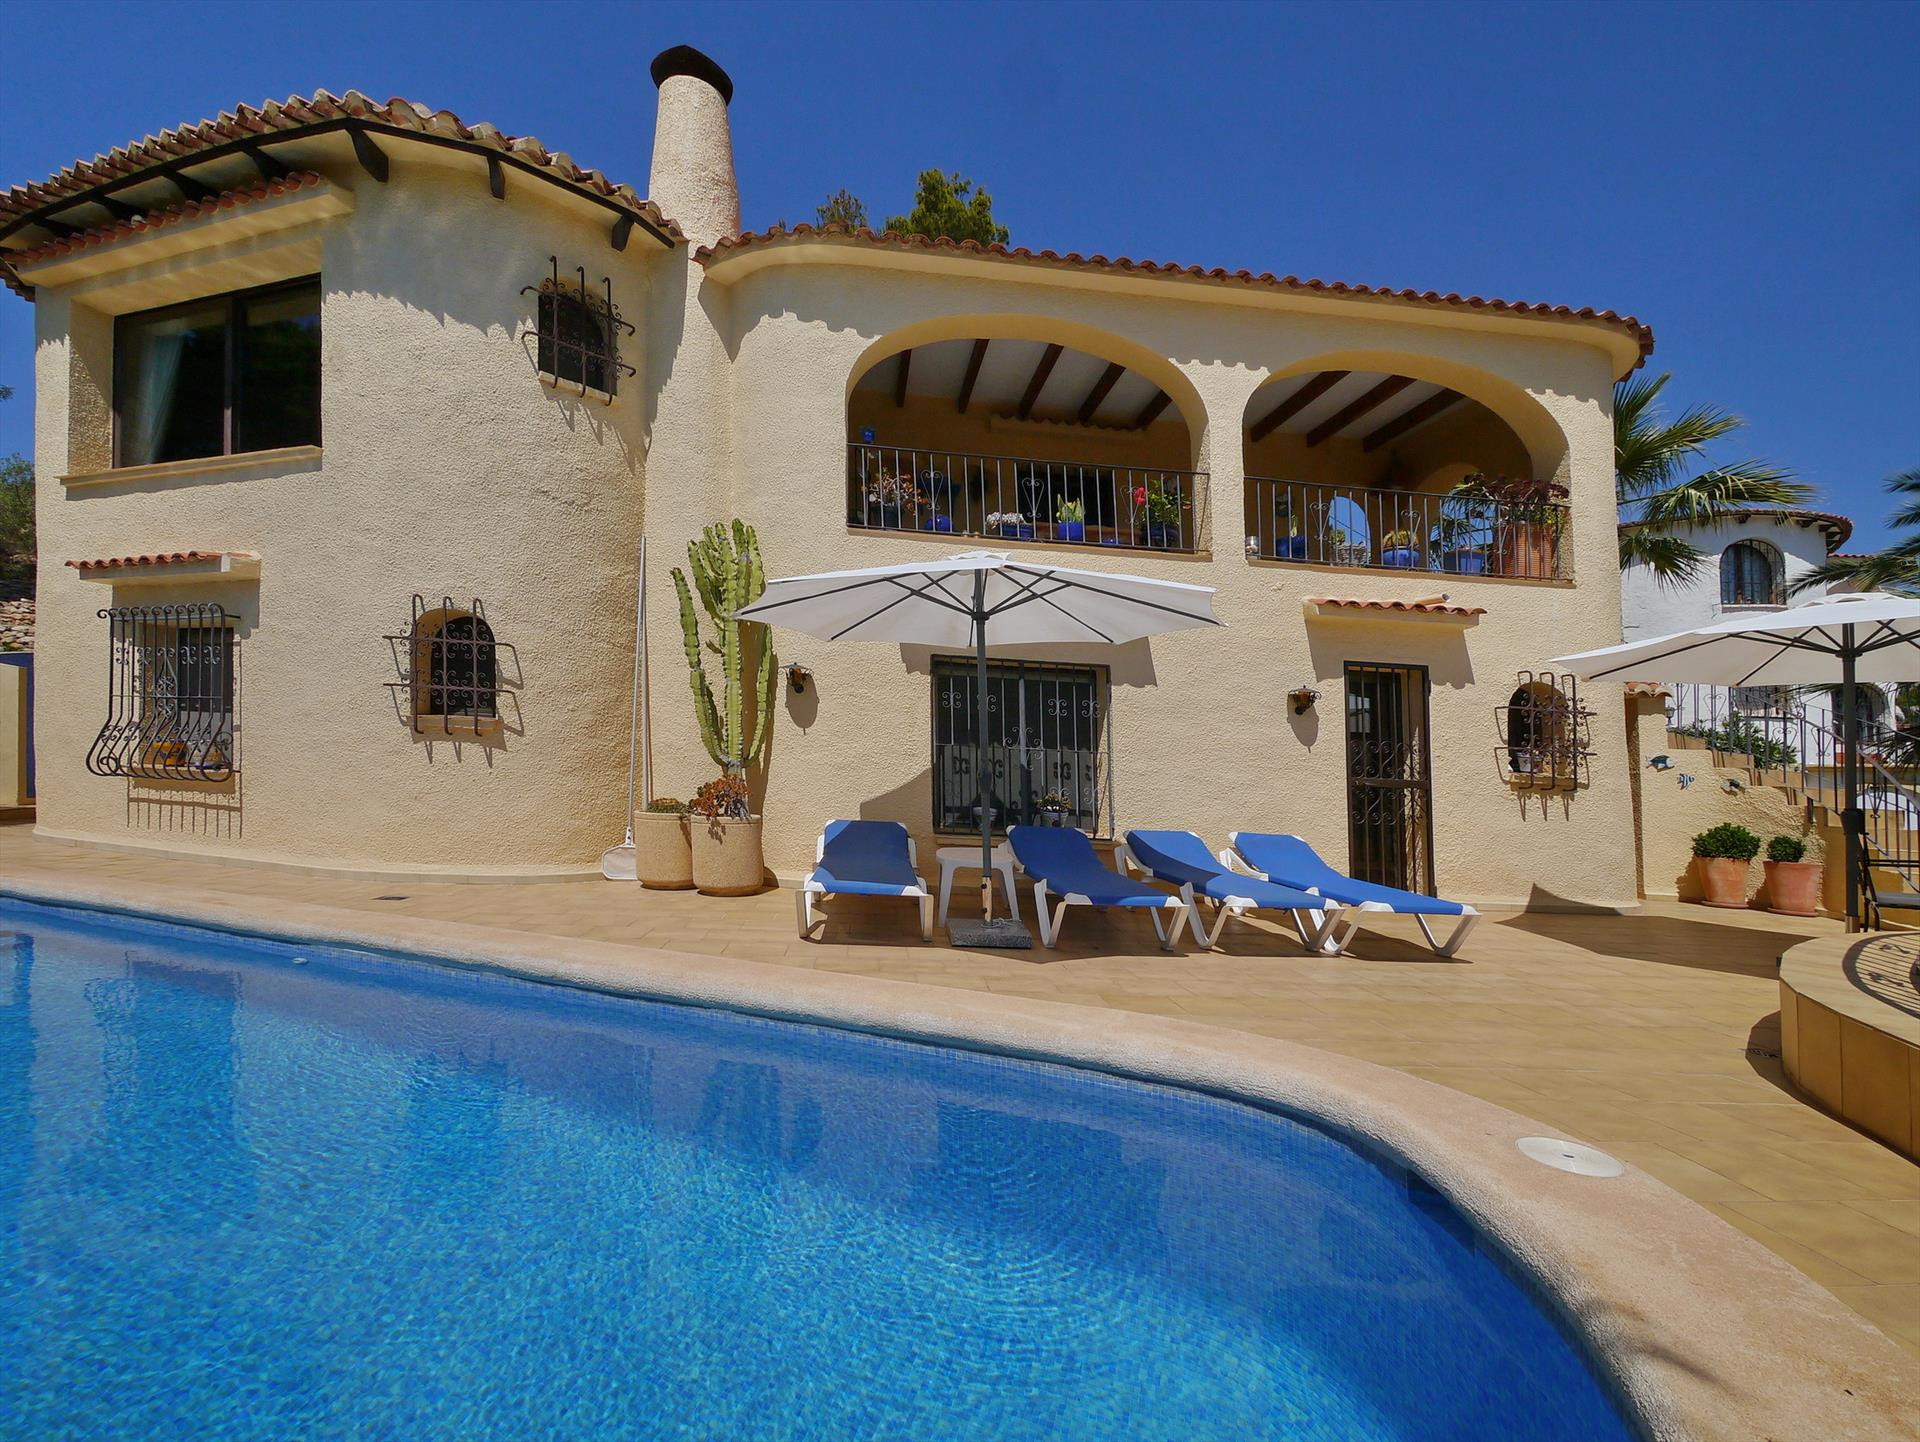 Buenavista, Large and cheerful villa in Benissa, on the Costa Blanca, Spain  with private pool for 6 persons.....